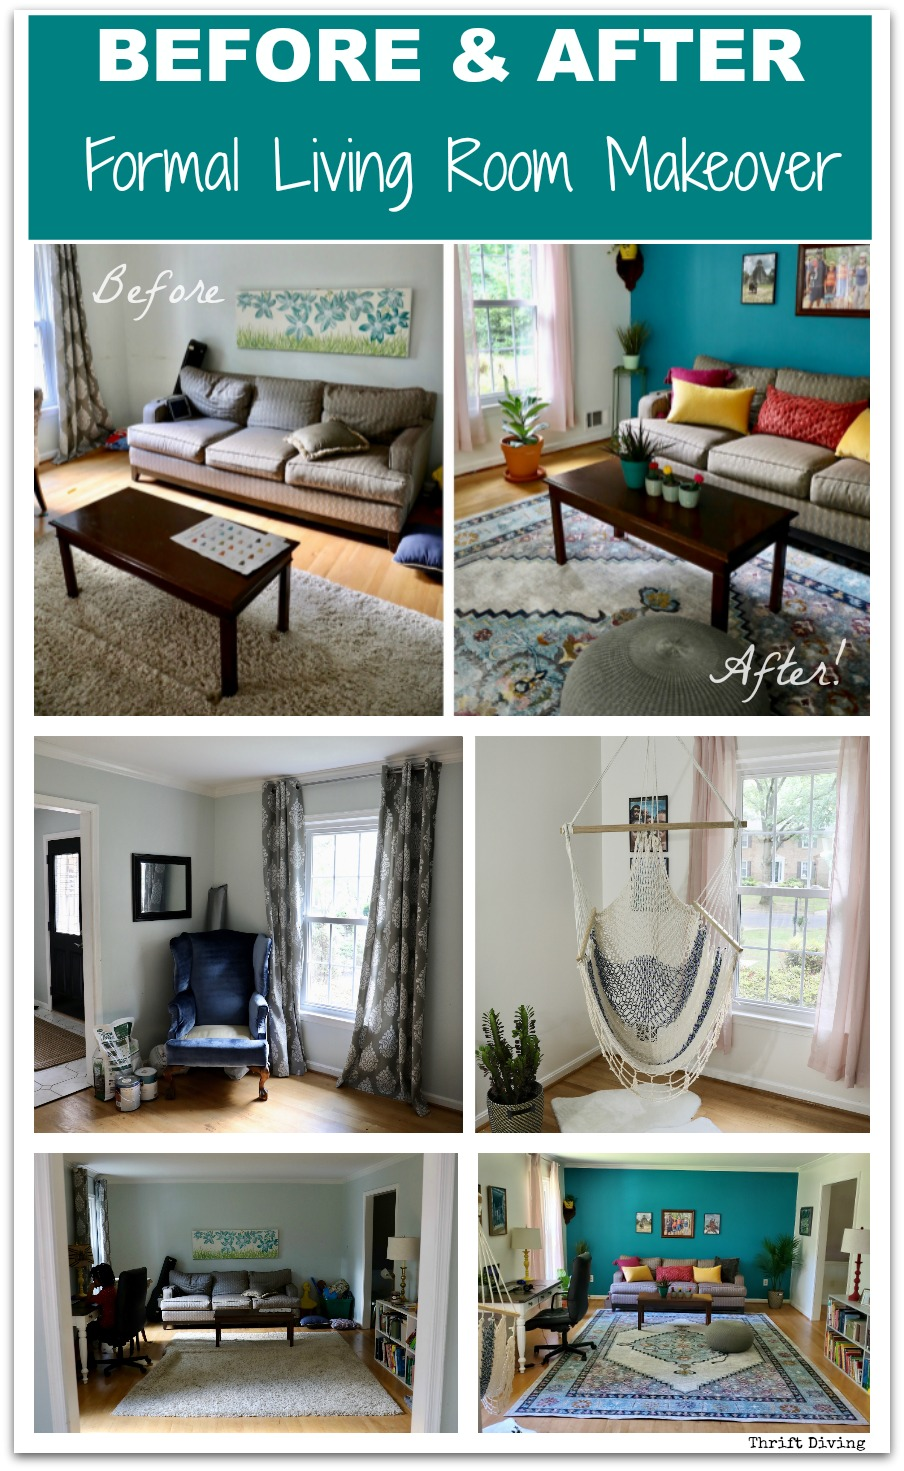 Formal Living Room: Before and After! | Living room ...